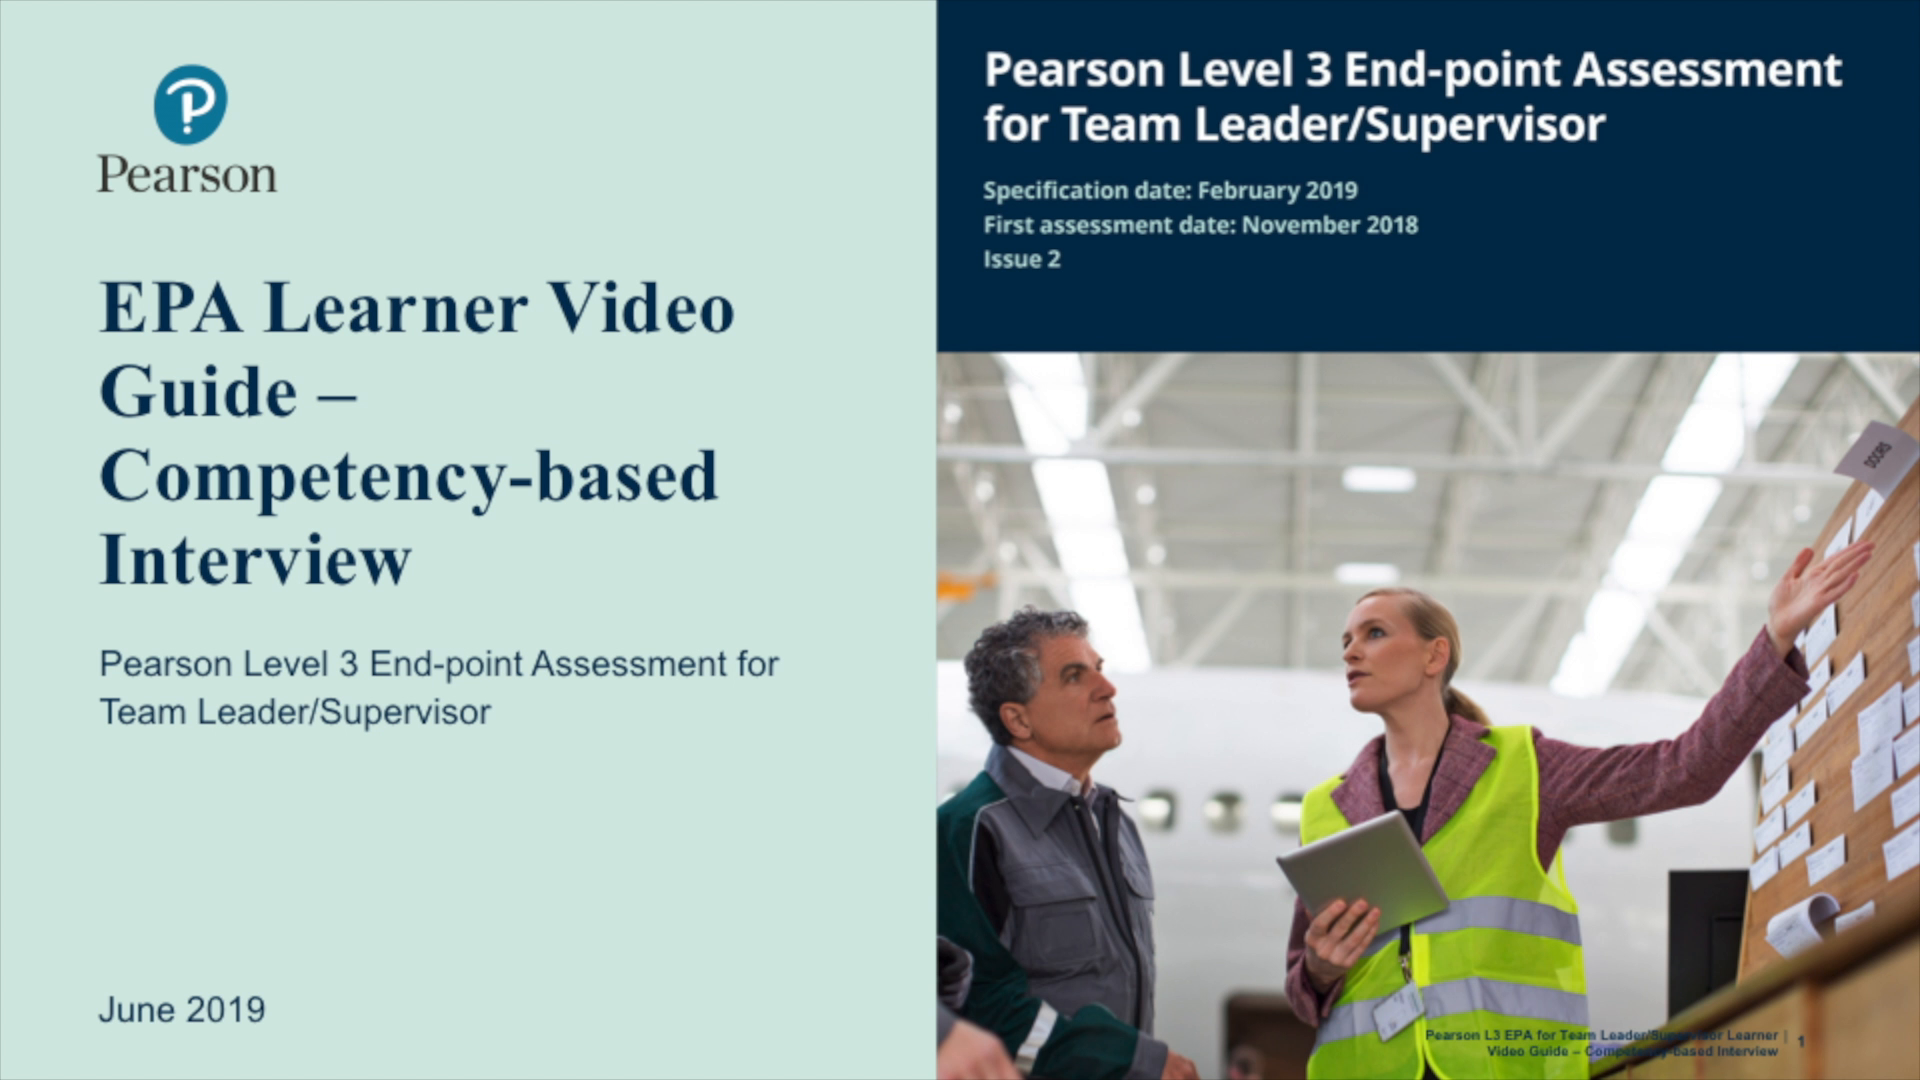 Pearson EPA Learner Video Guide: Team Leader -Competency-based Interview